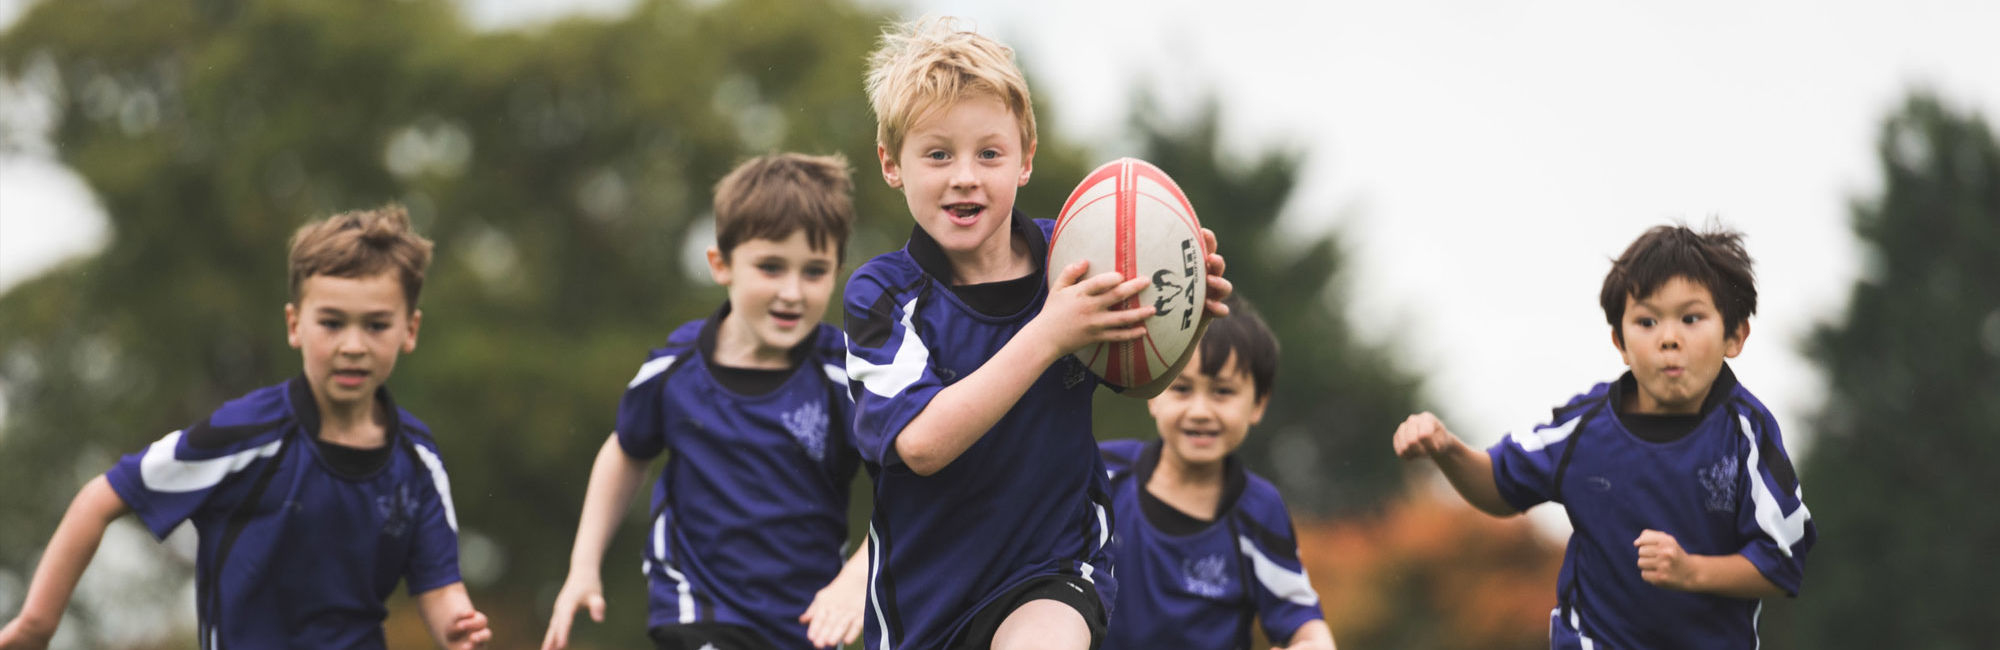 wycliffe kids playing rugby